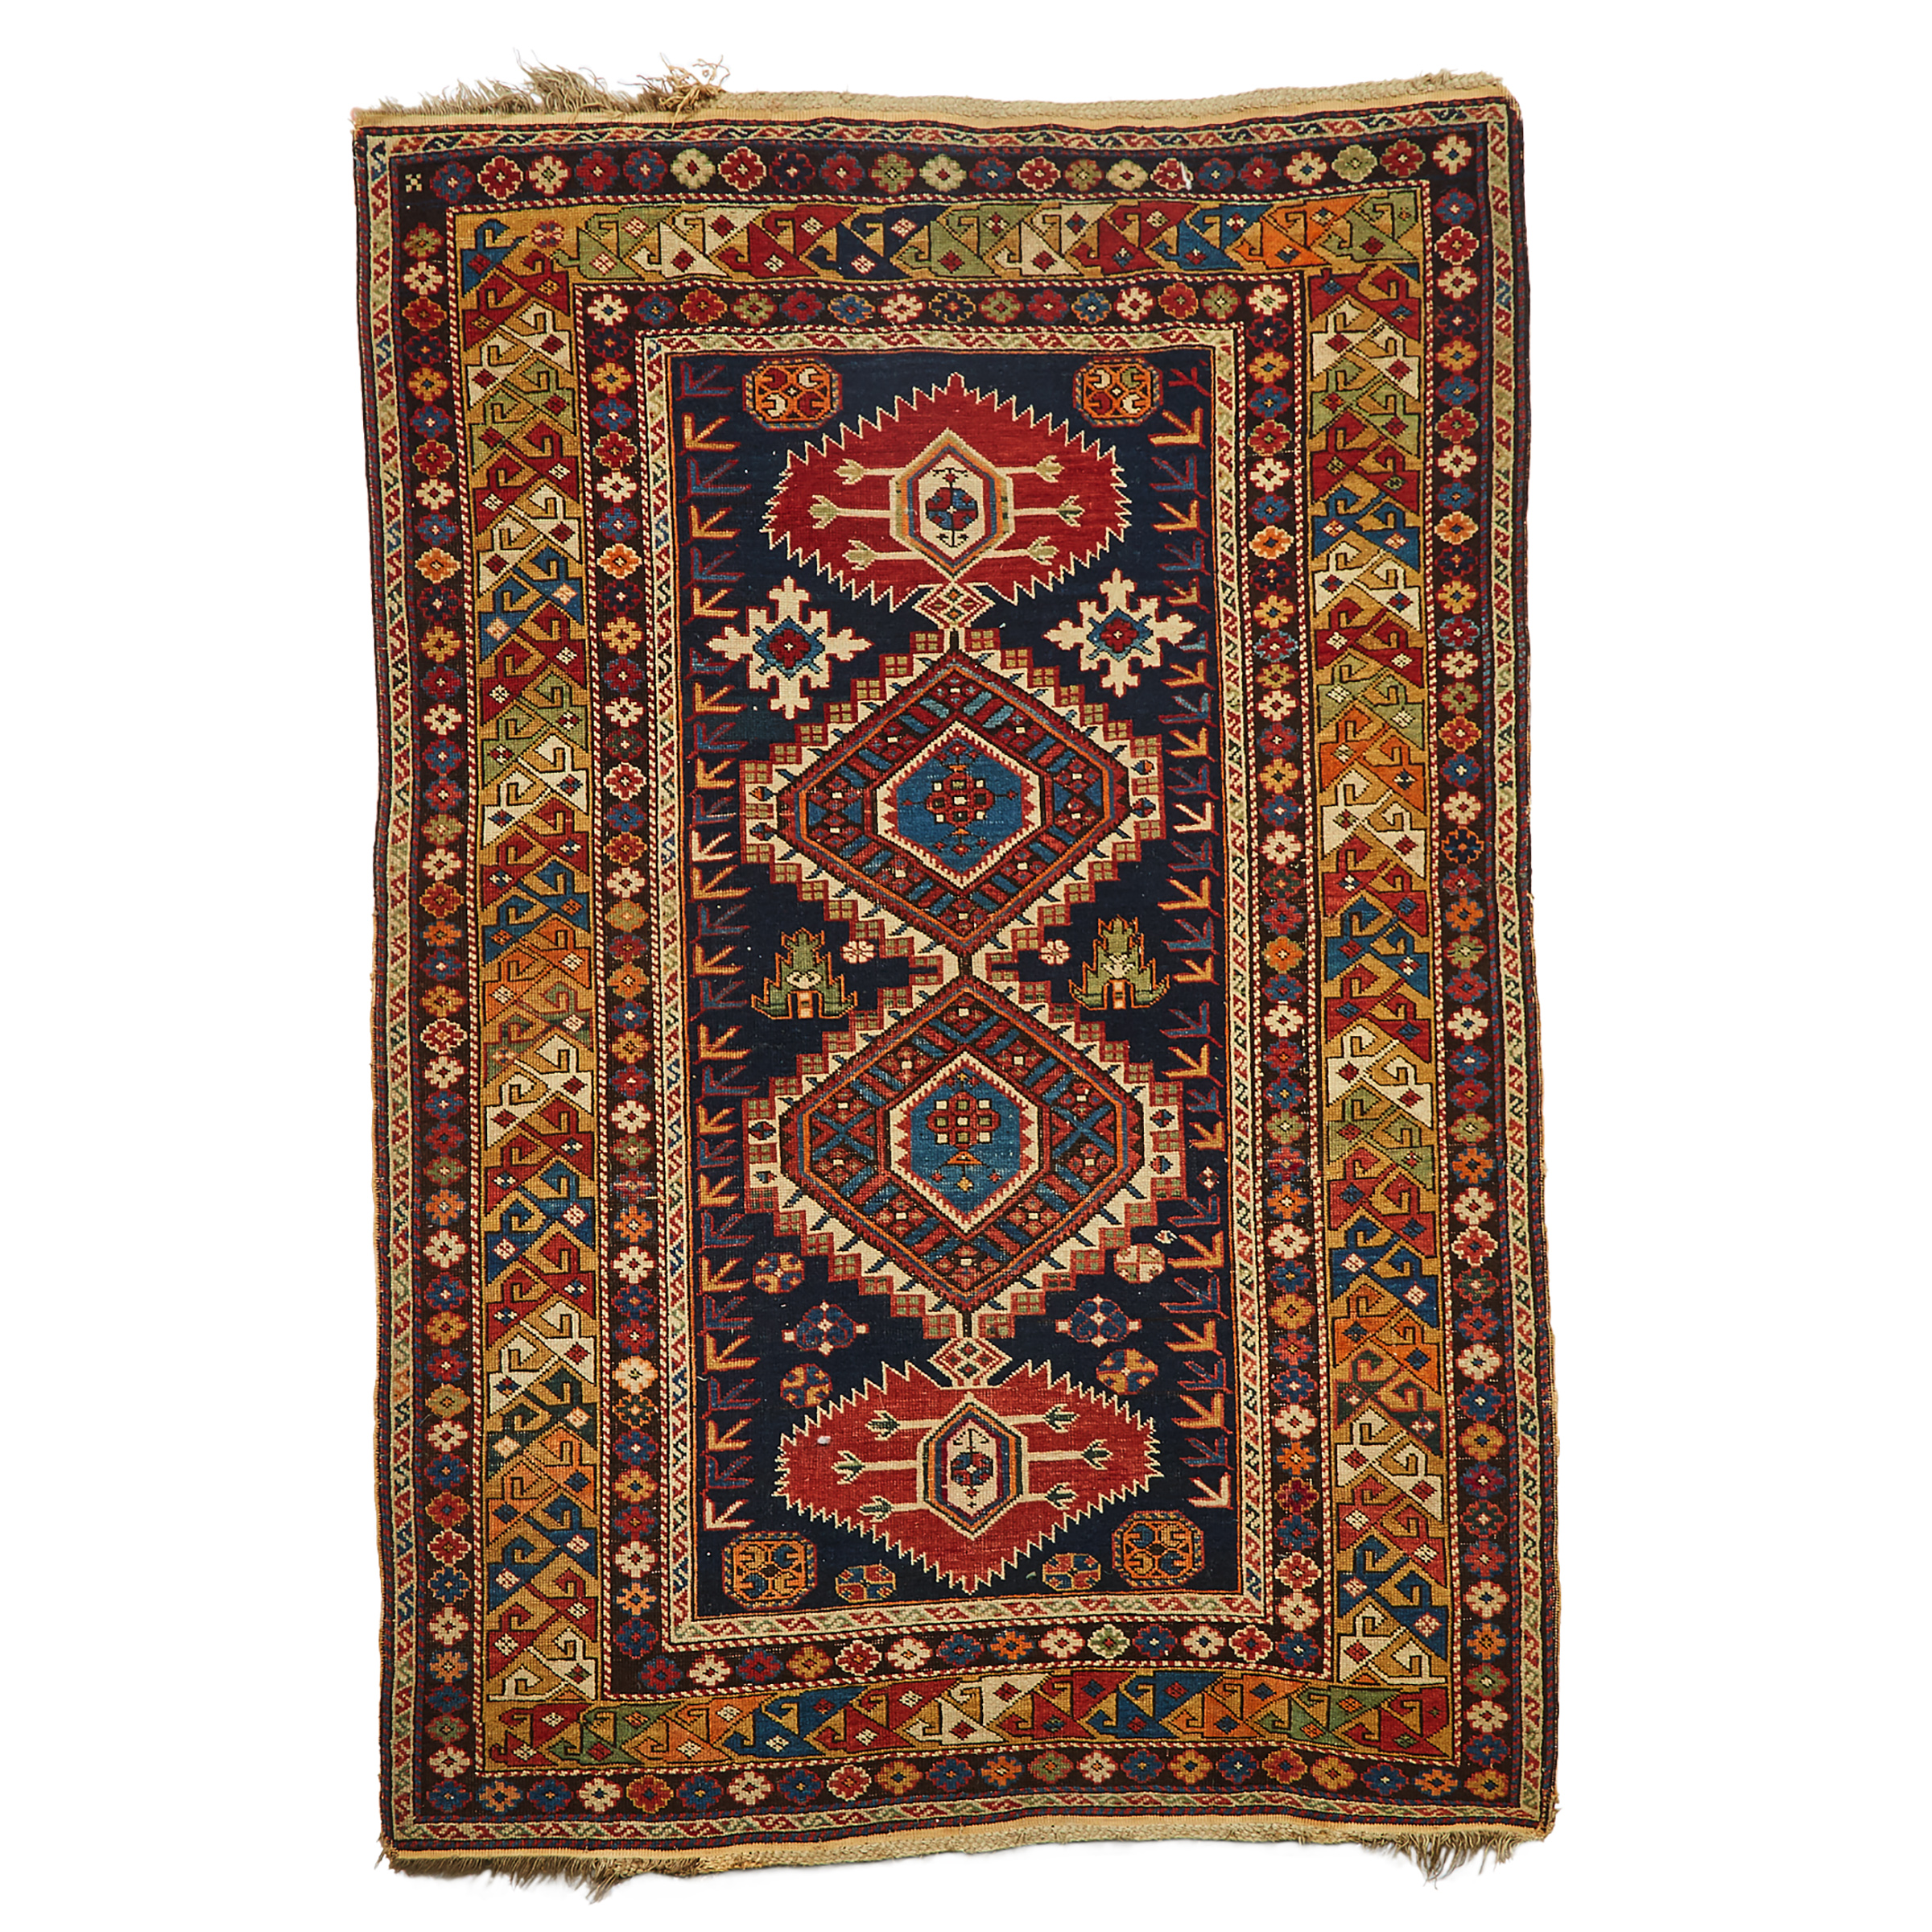 Shirvan Rug, Caucasian, late 19th/ early 20th century